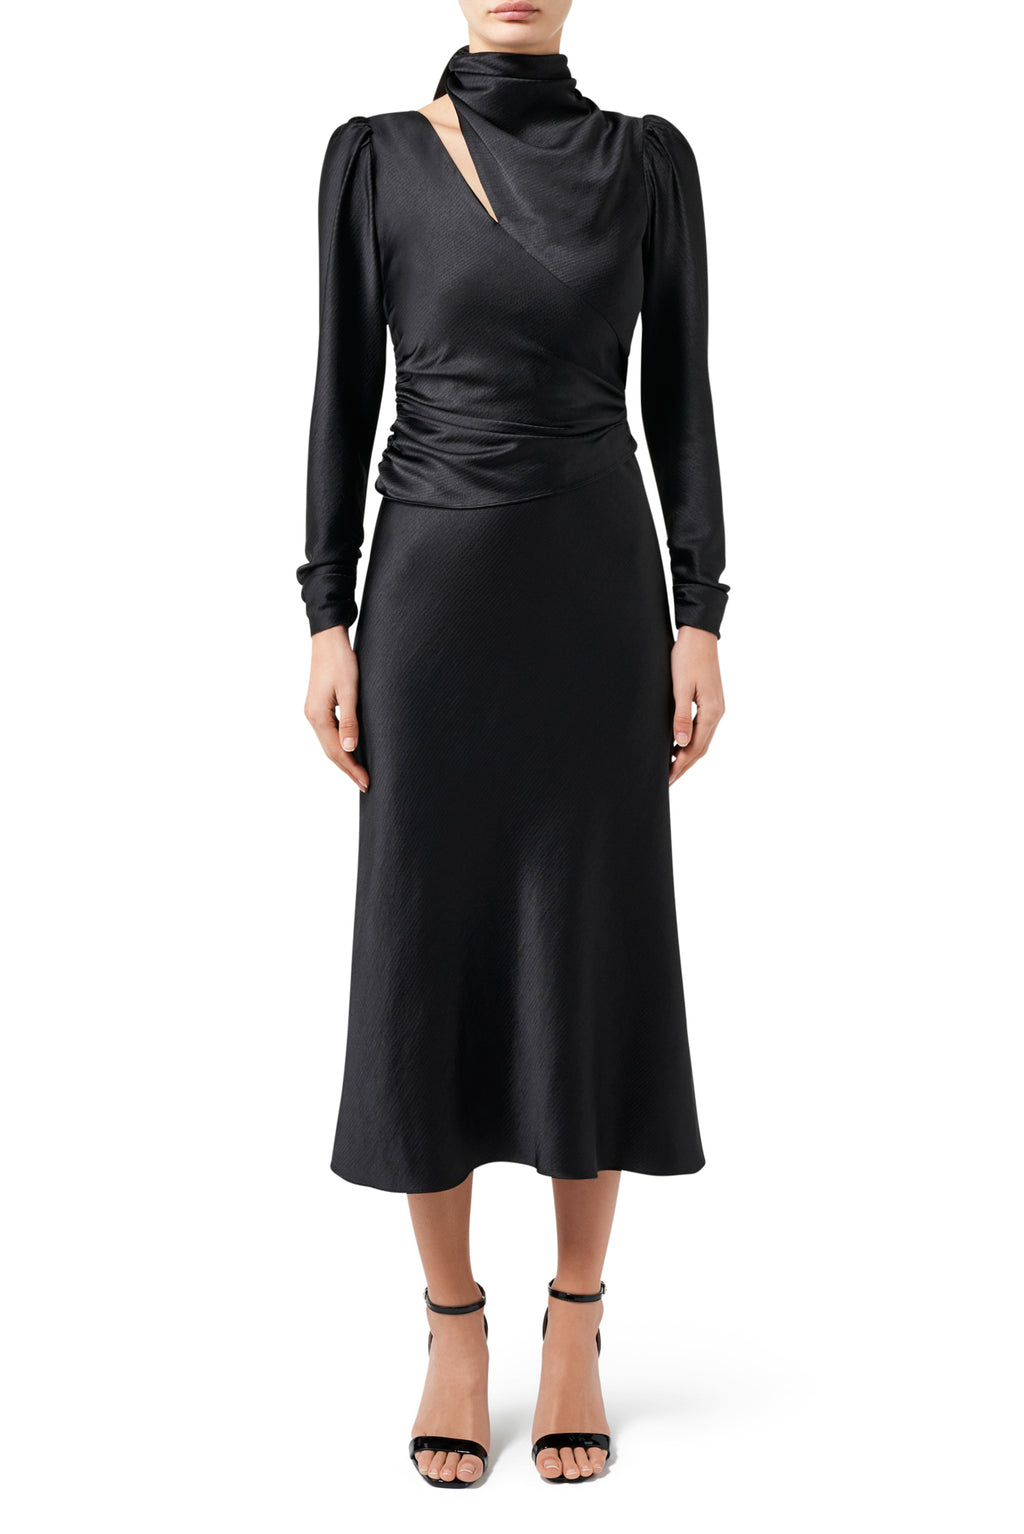 Porsche Tie-Neck Midi Dress - Black